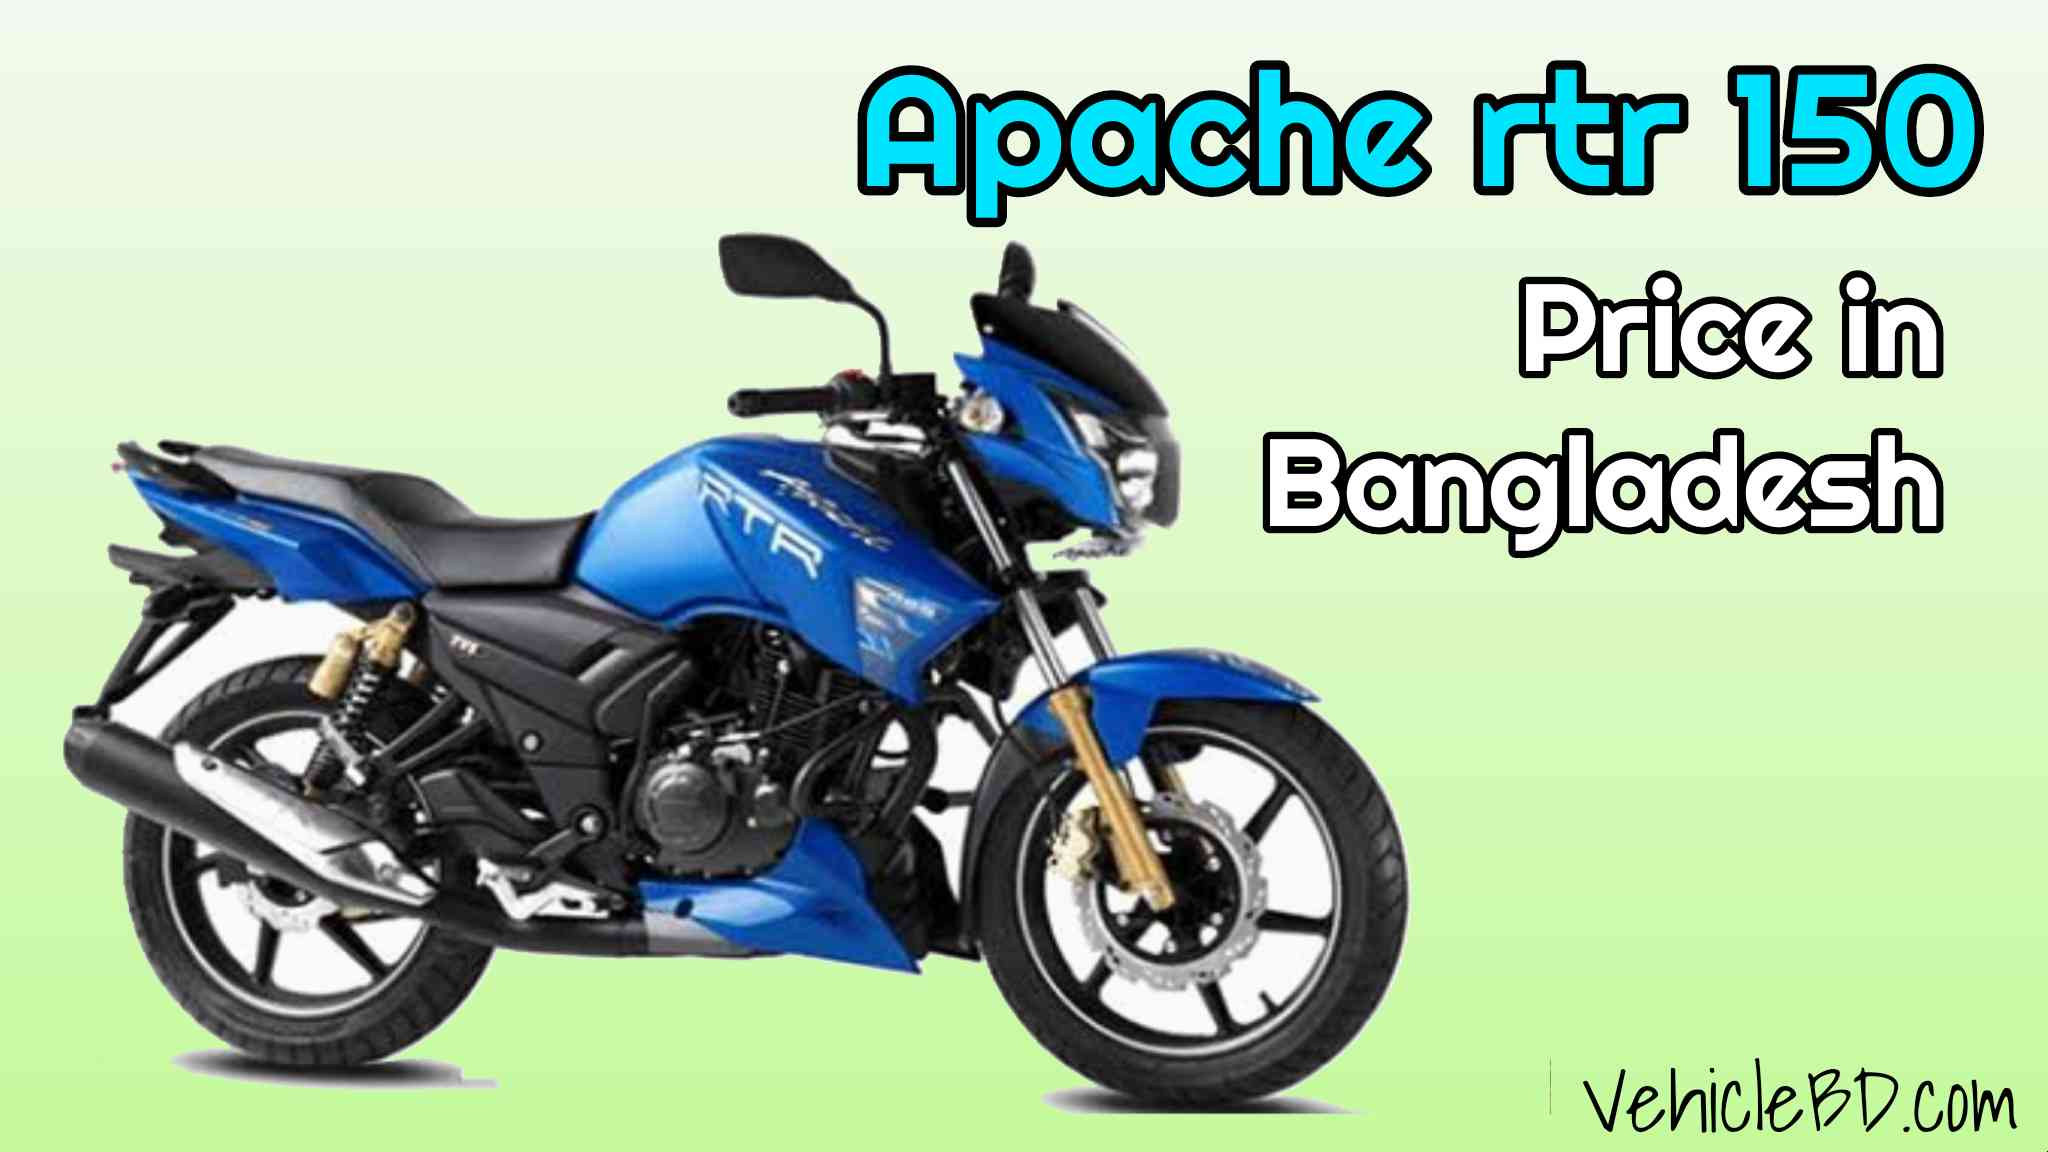 Photo of Apache rtr 150 Price in Bangladesh 2021